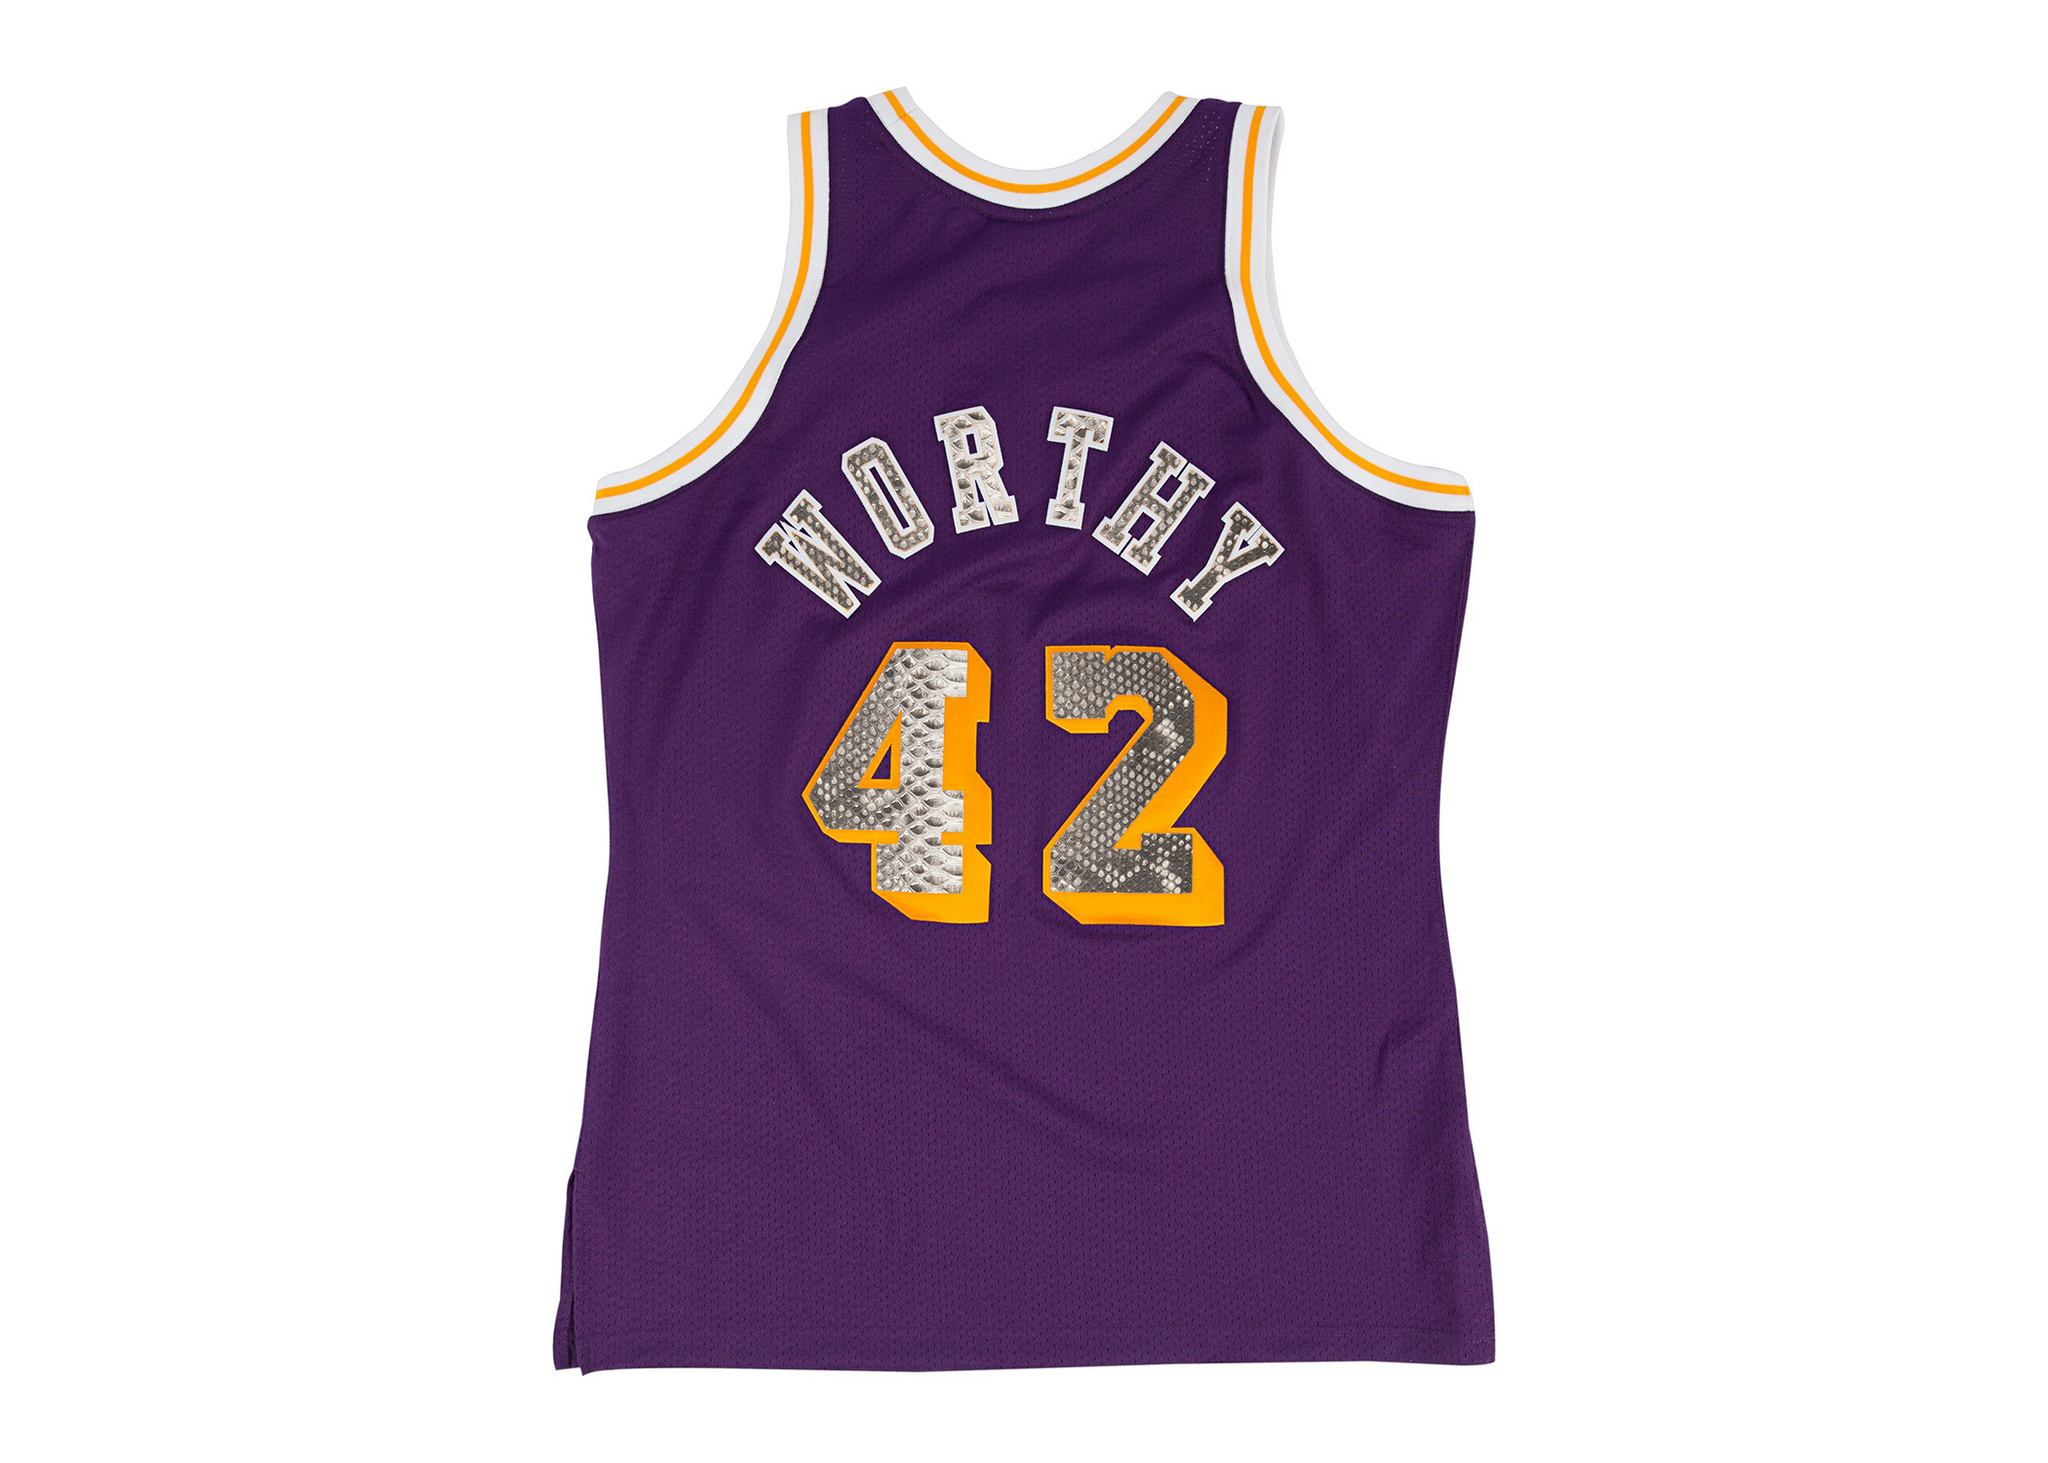 Mitchell & Ness James Worthy 1984-1985 Los Angeles Lakers Python Jersey